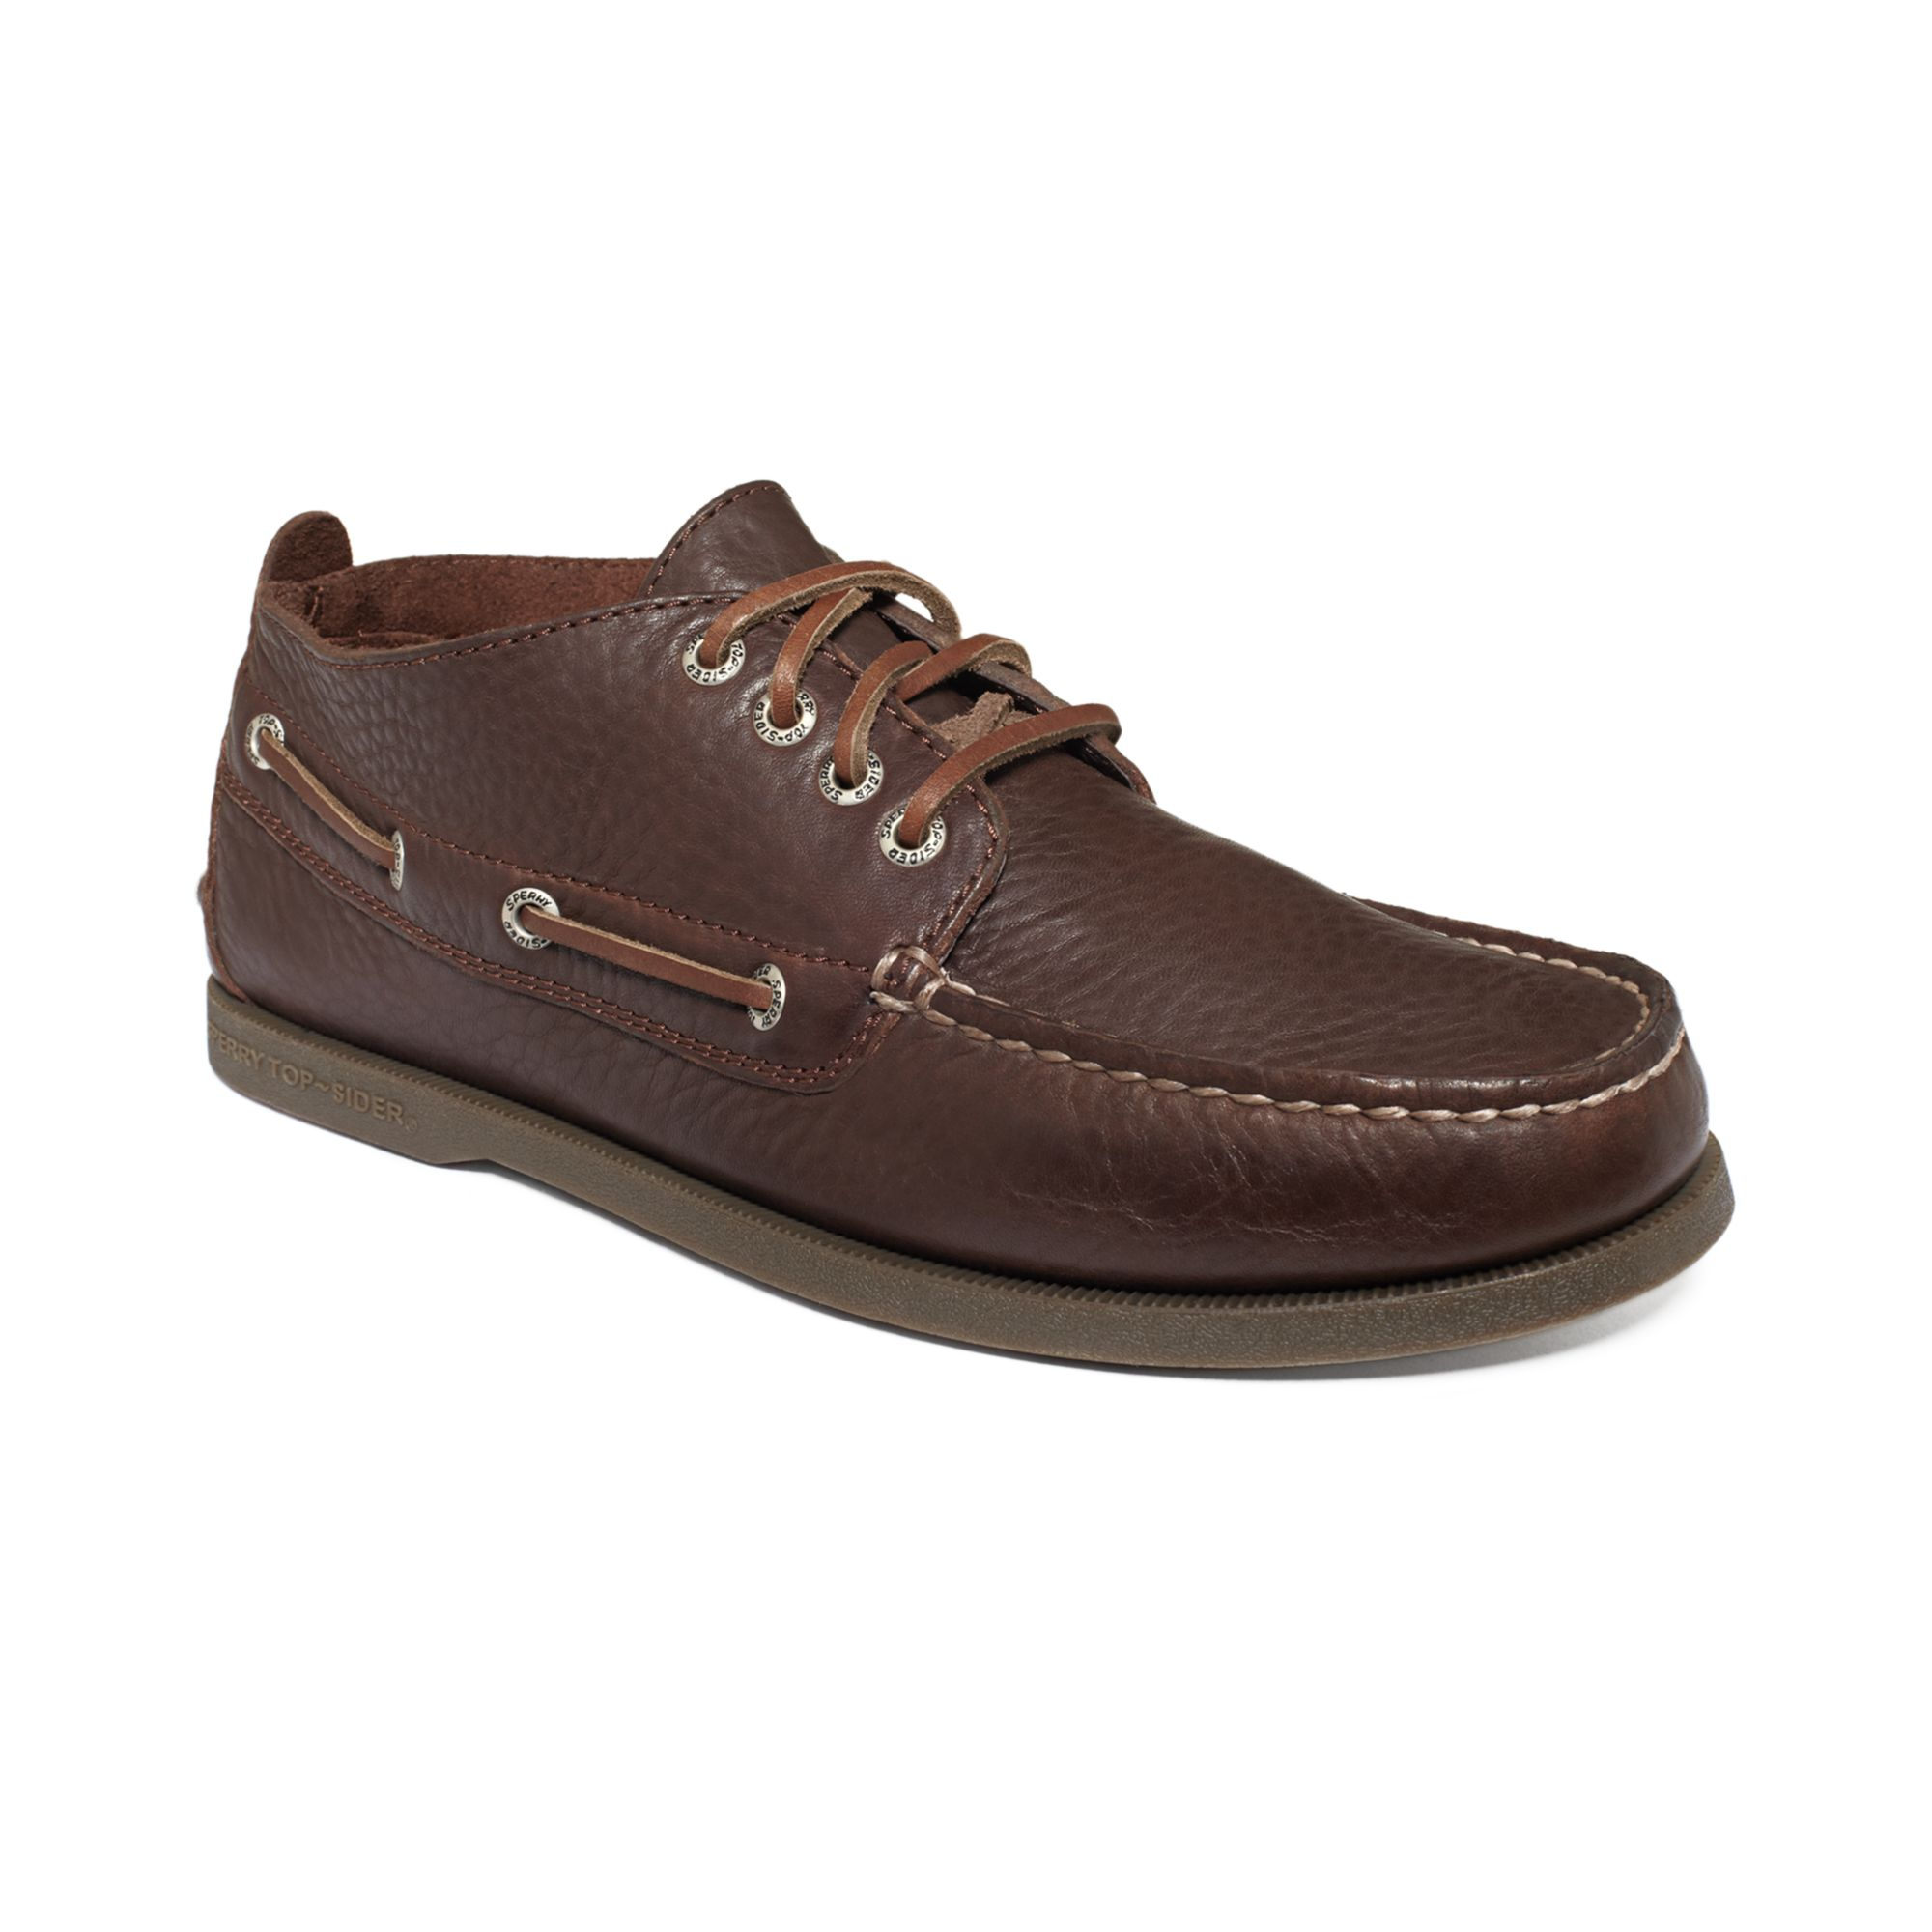 sperry top sider ao chukka relaxed boots in brown for